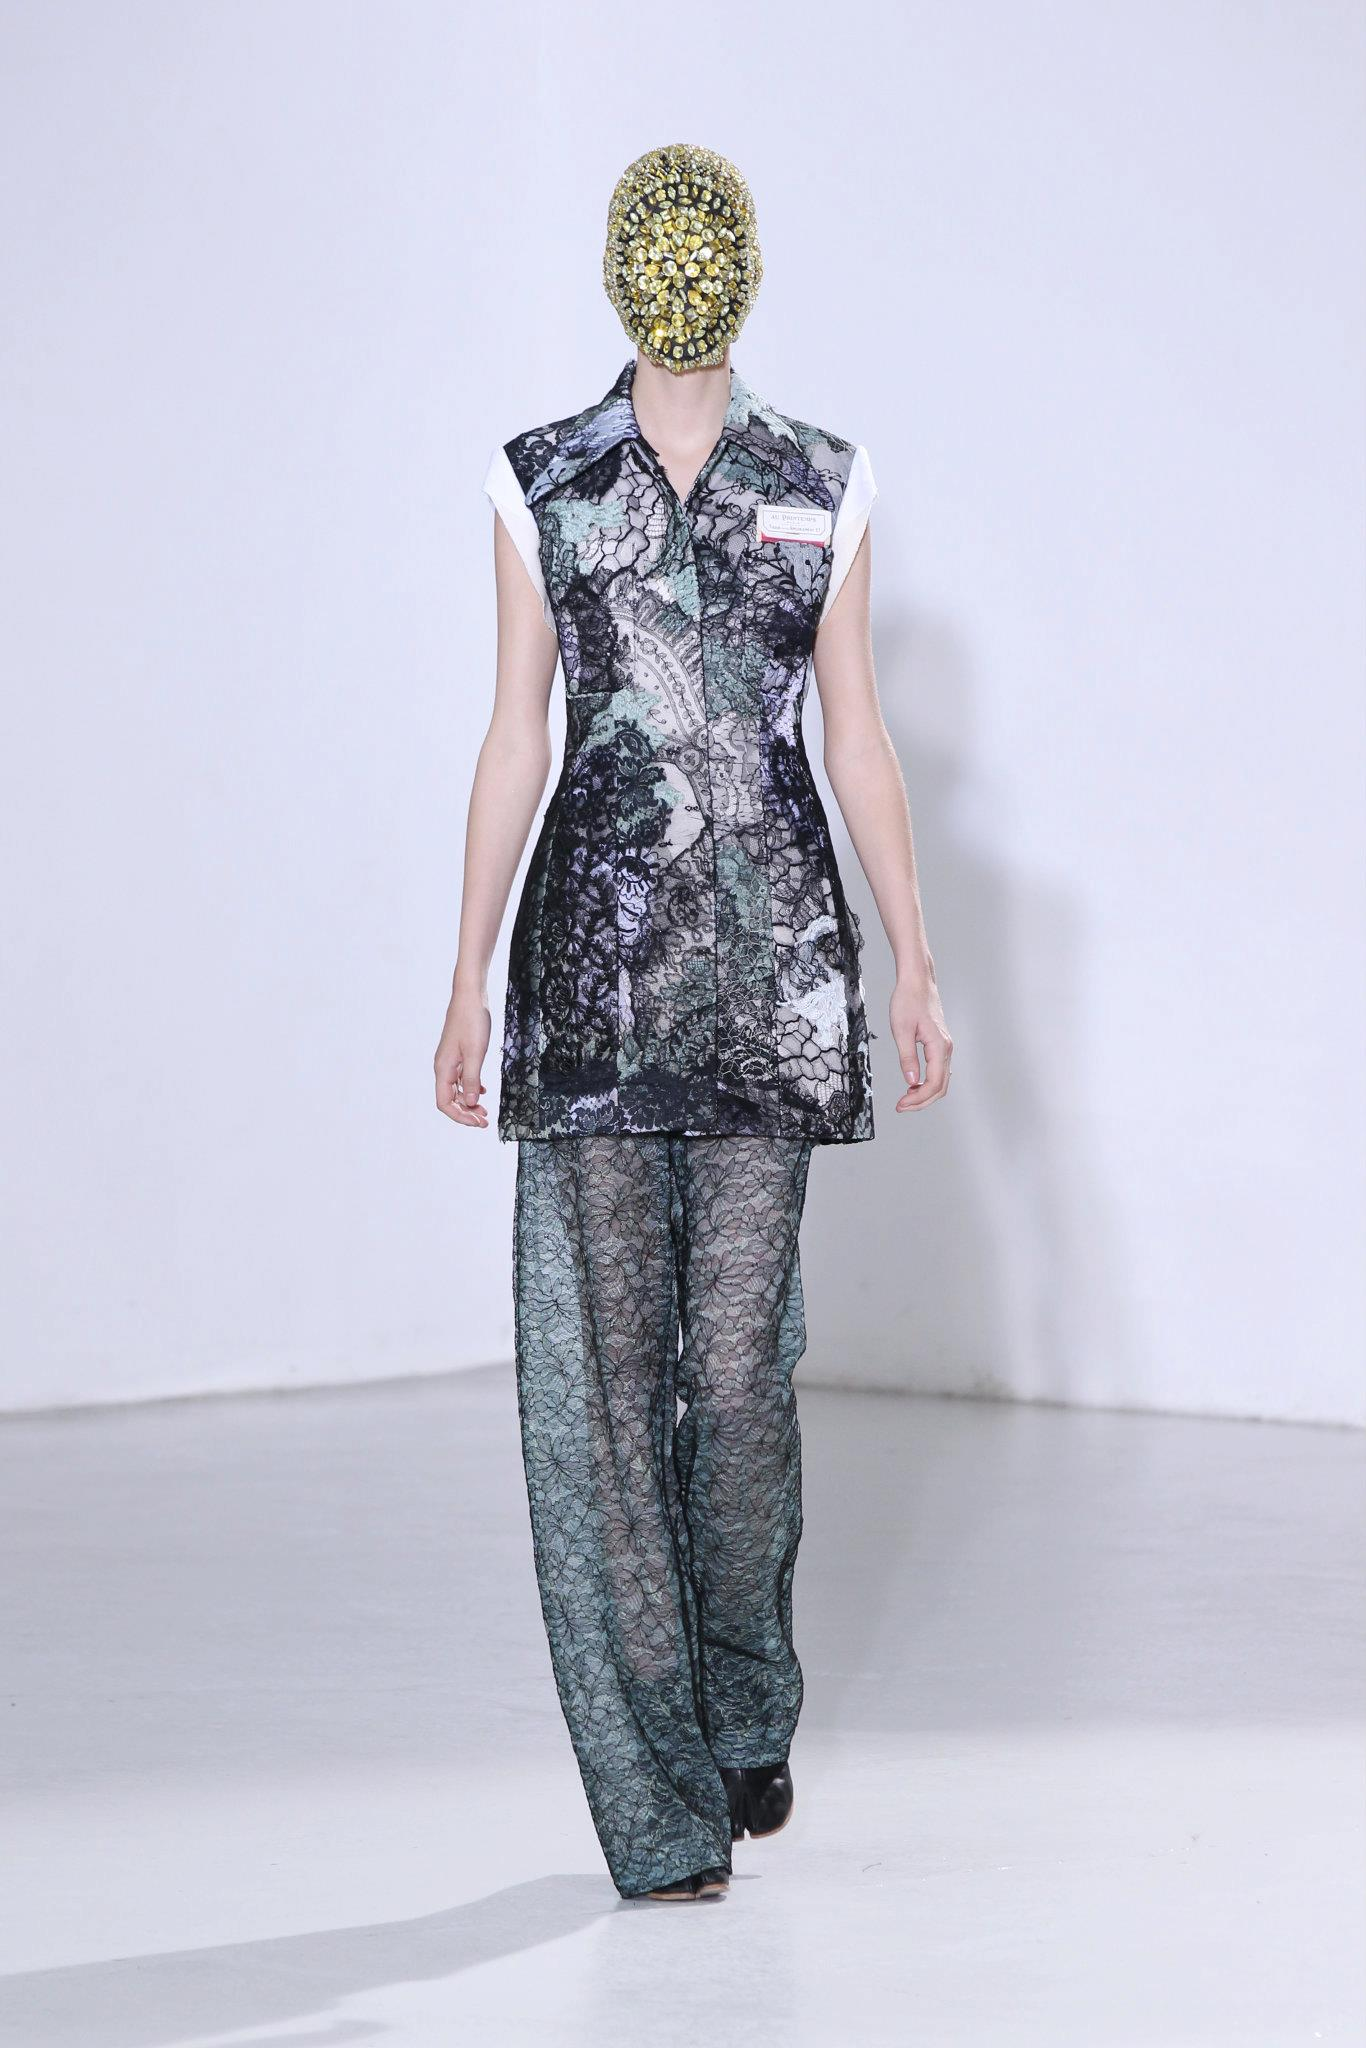 maison martin margiela artisanal fall winter 2012 2013